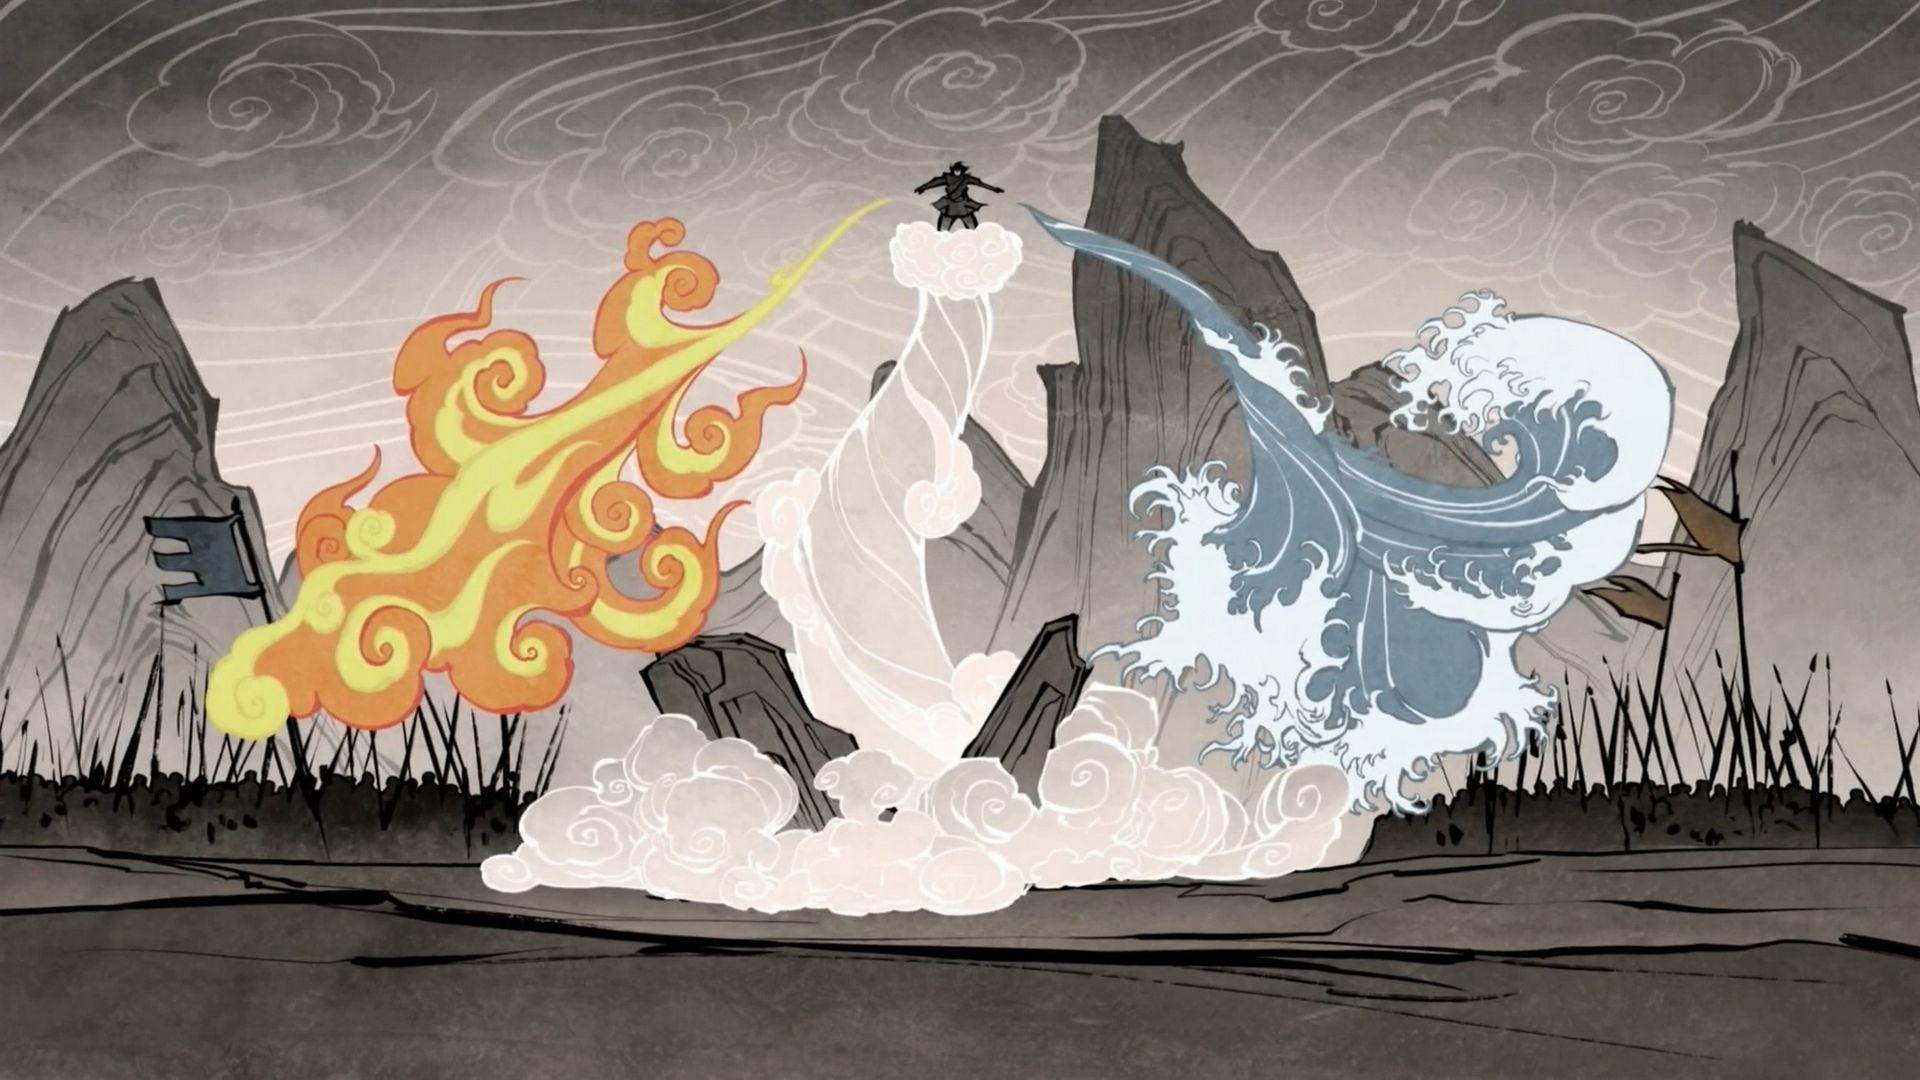 avatar the last airbender hd image. | avatar | pinterest | avatar